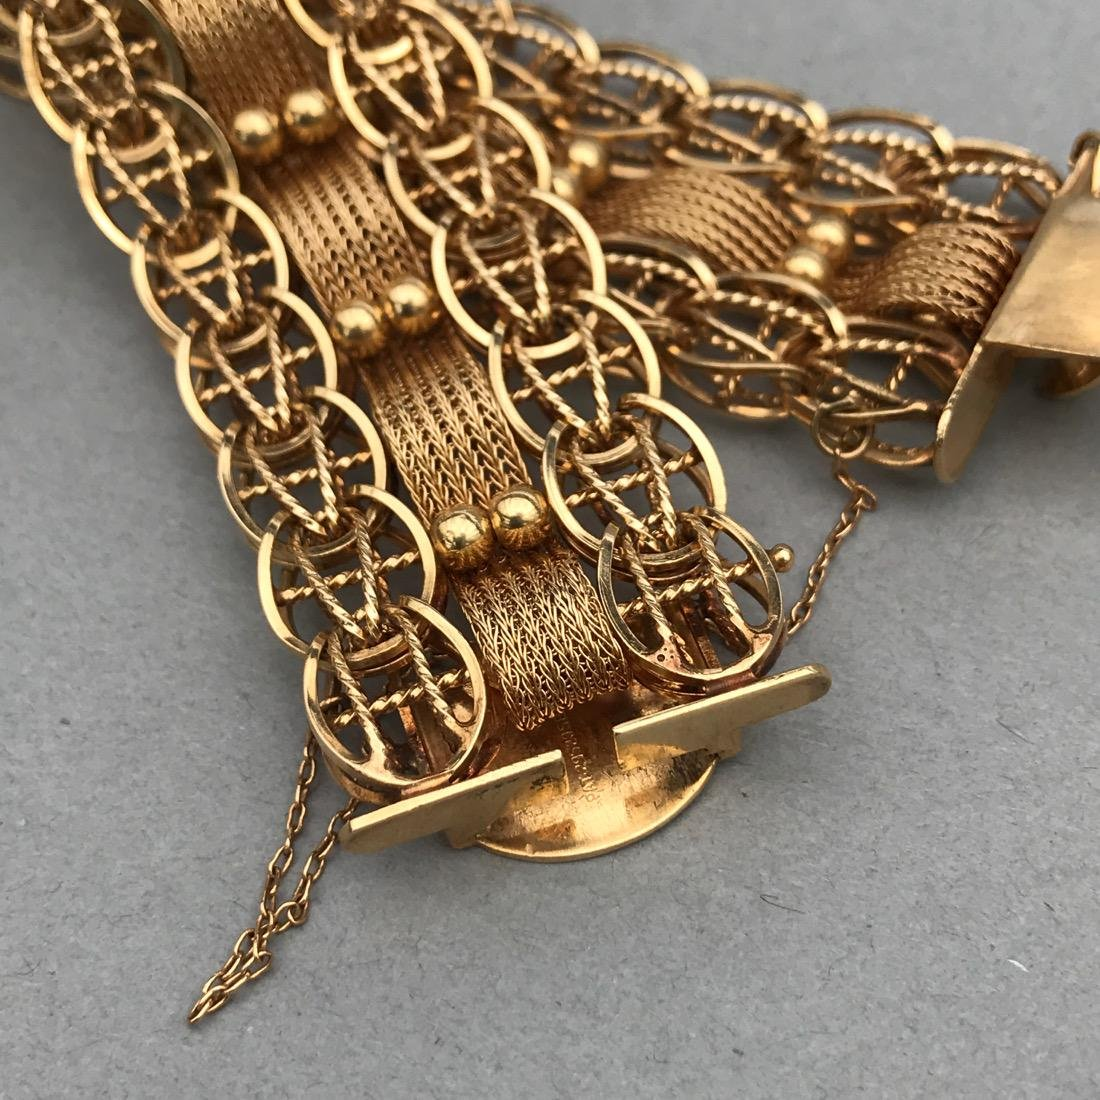 Ornate Woven Chain 14K Gold Bracelet - 4